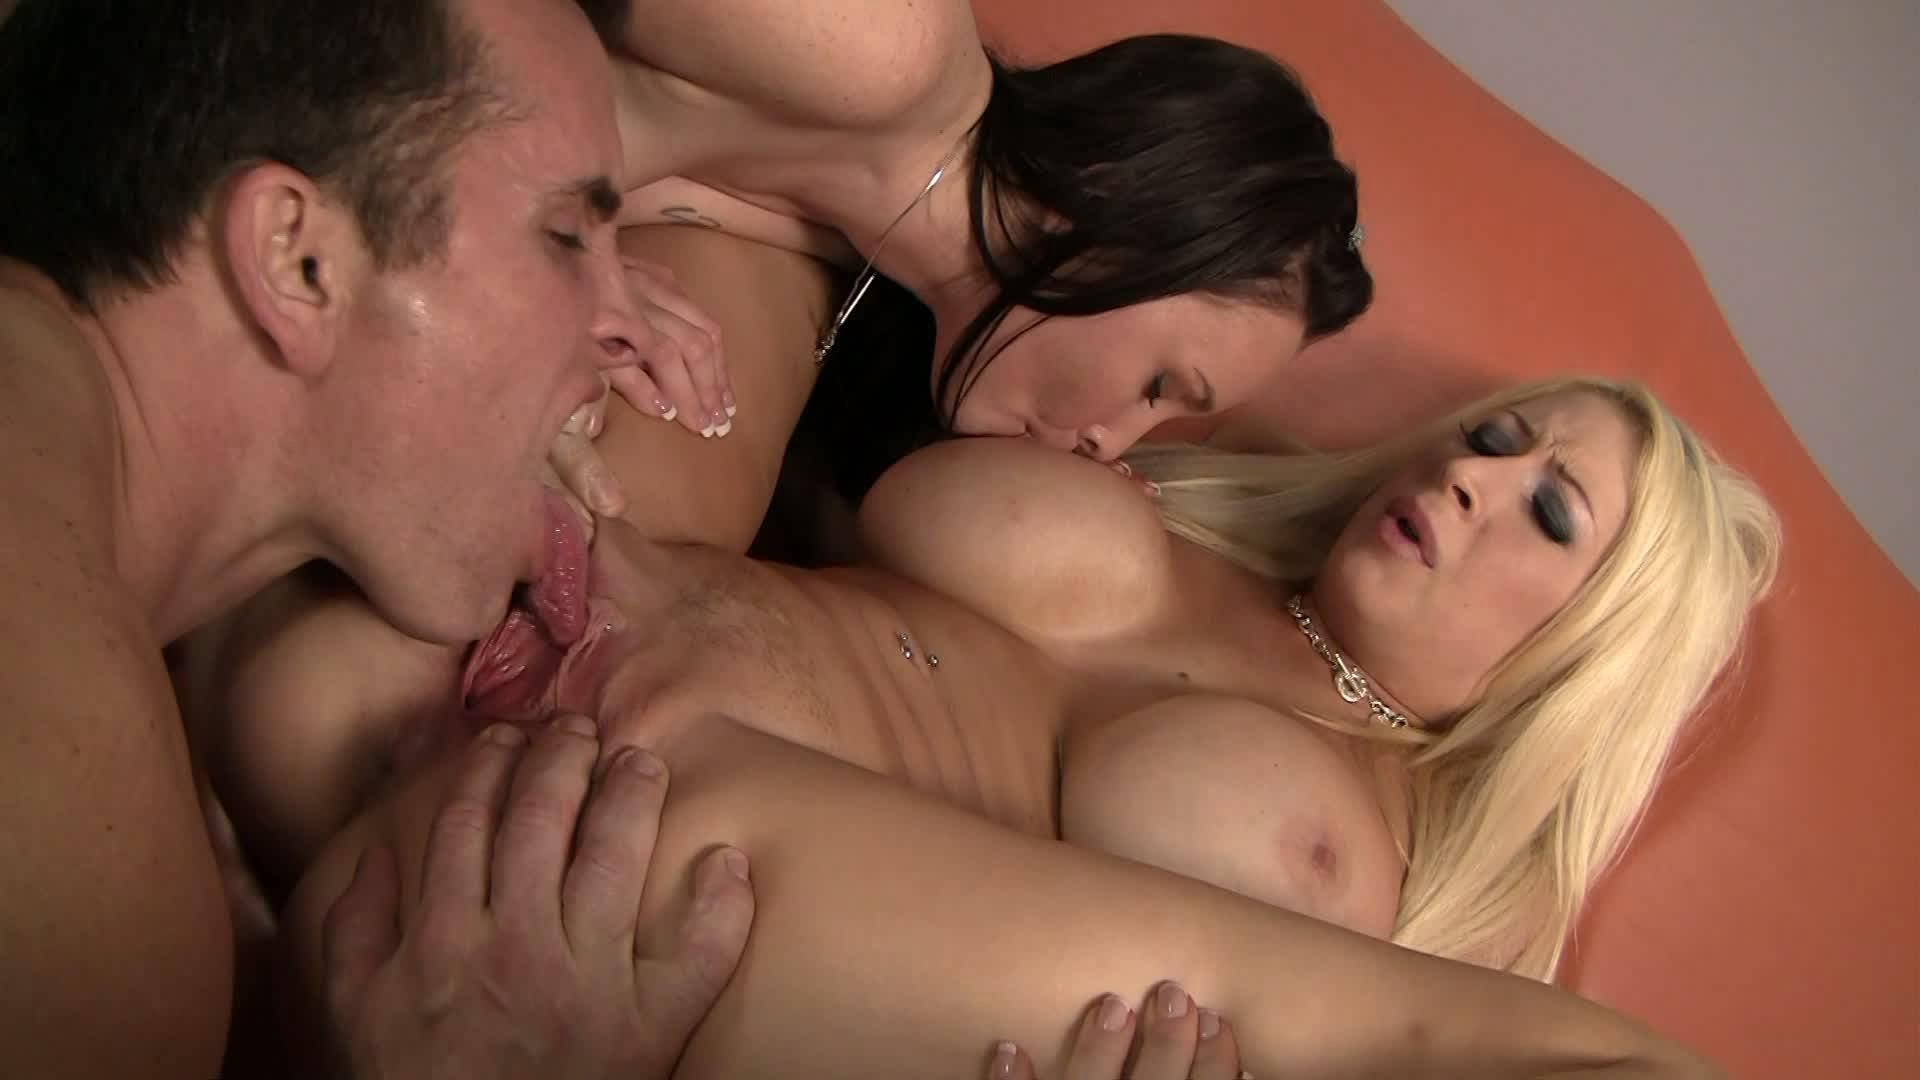 Couples Bang The Babysitter 5 Xvideos146903